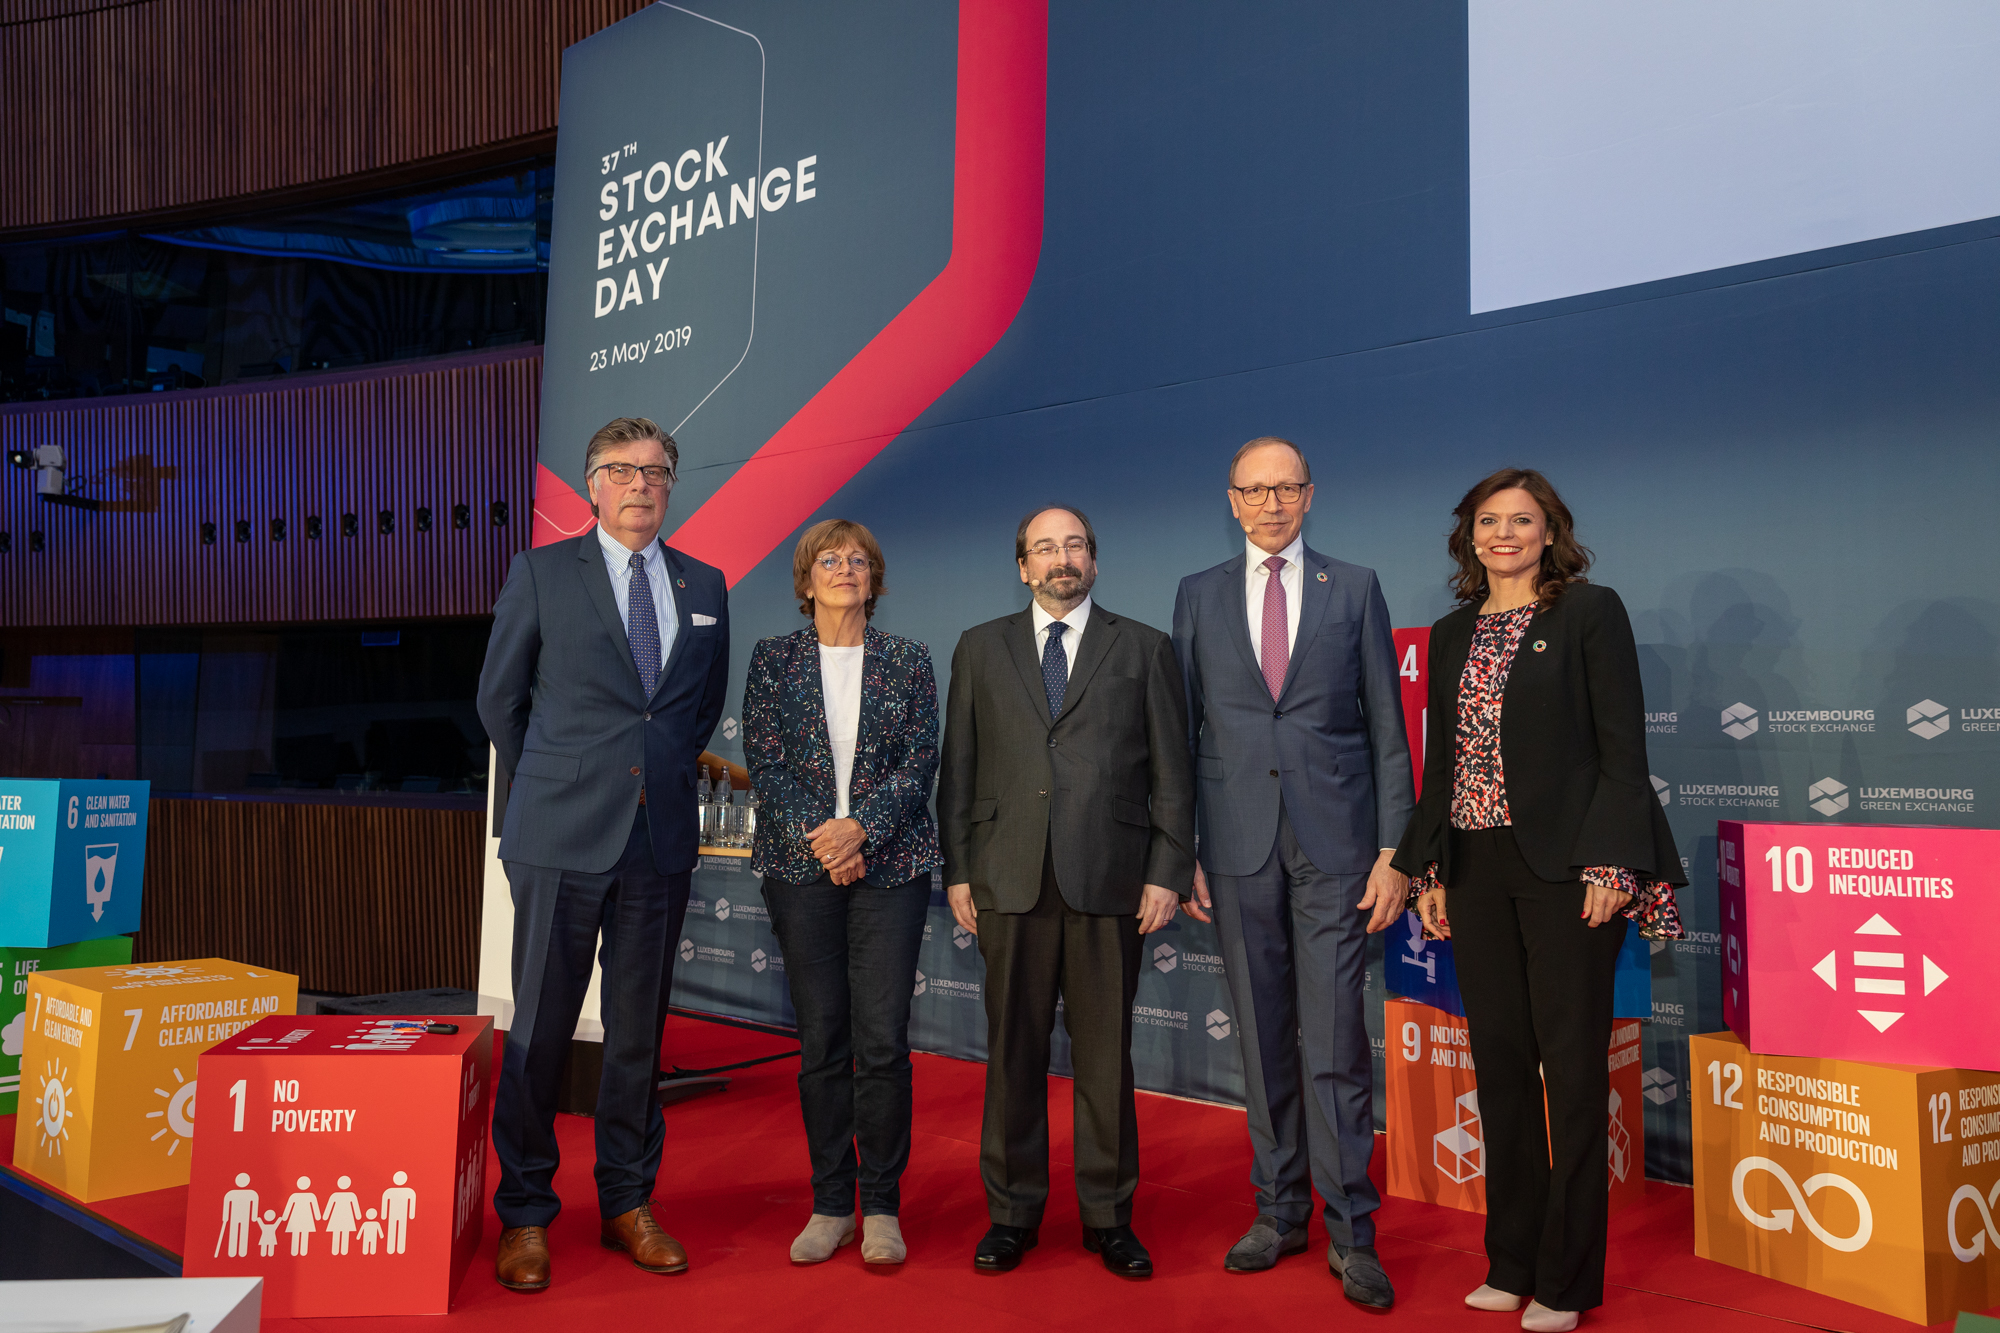 Luxembourg Stock Exchange dedicates annual stock exchange day to the UN SDGs